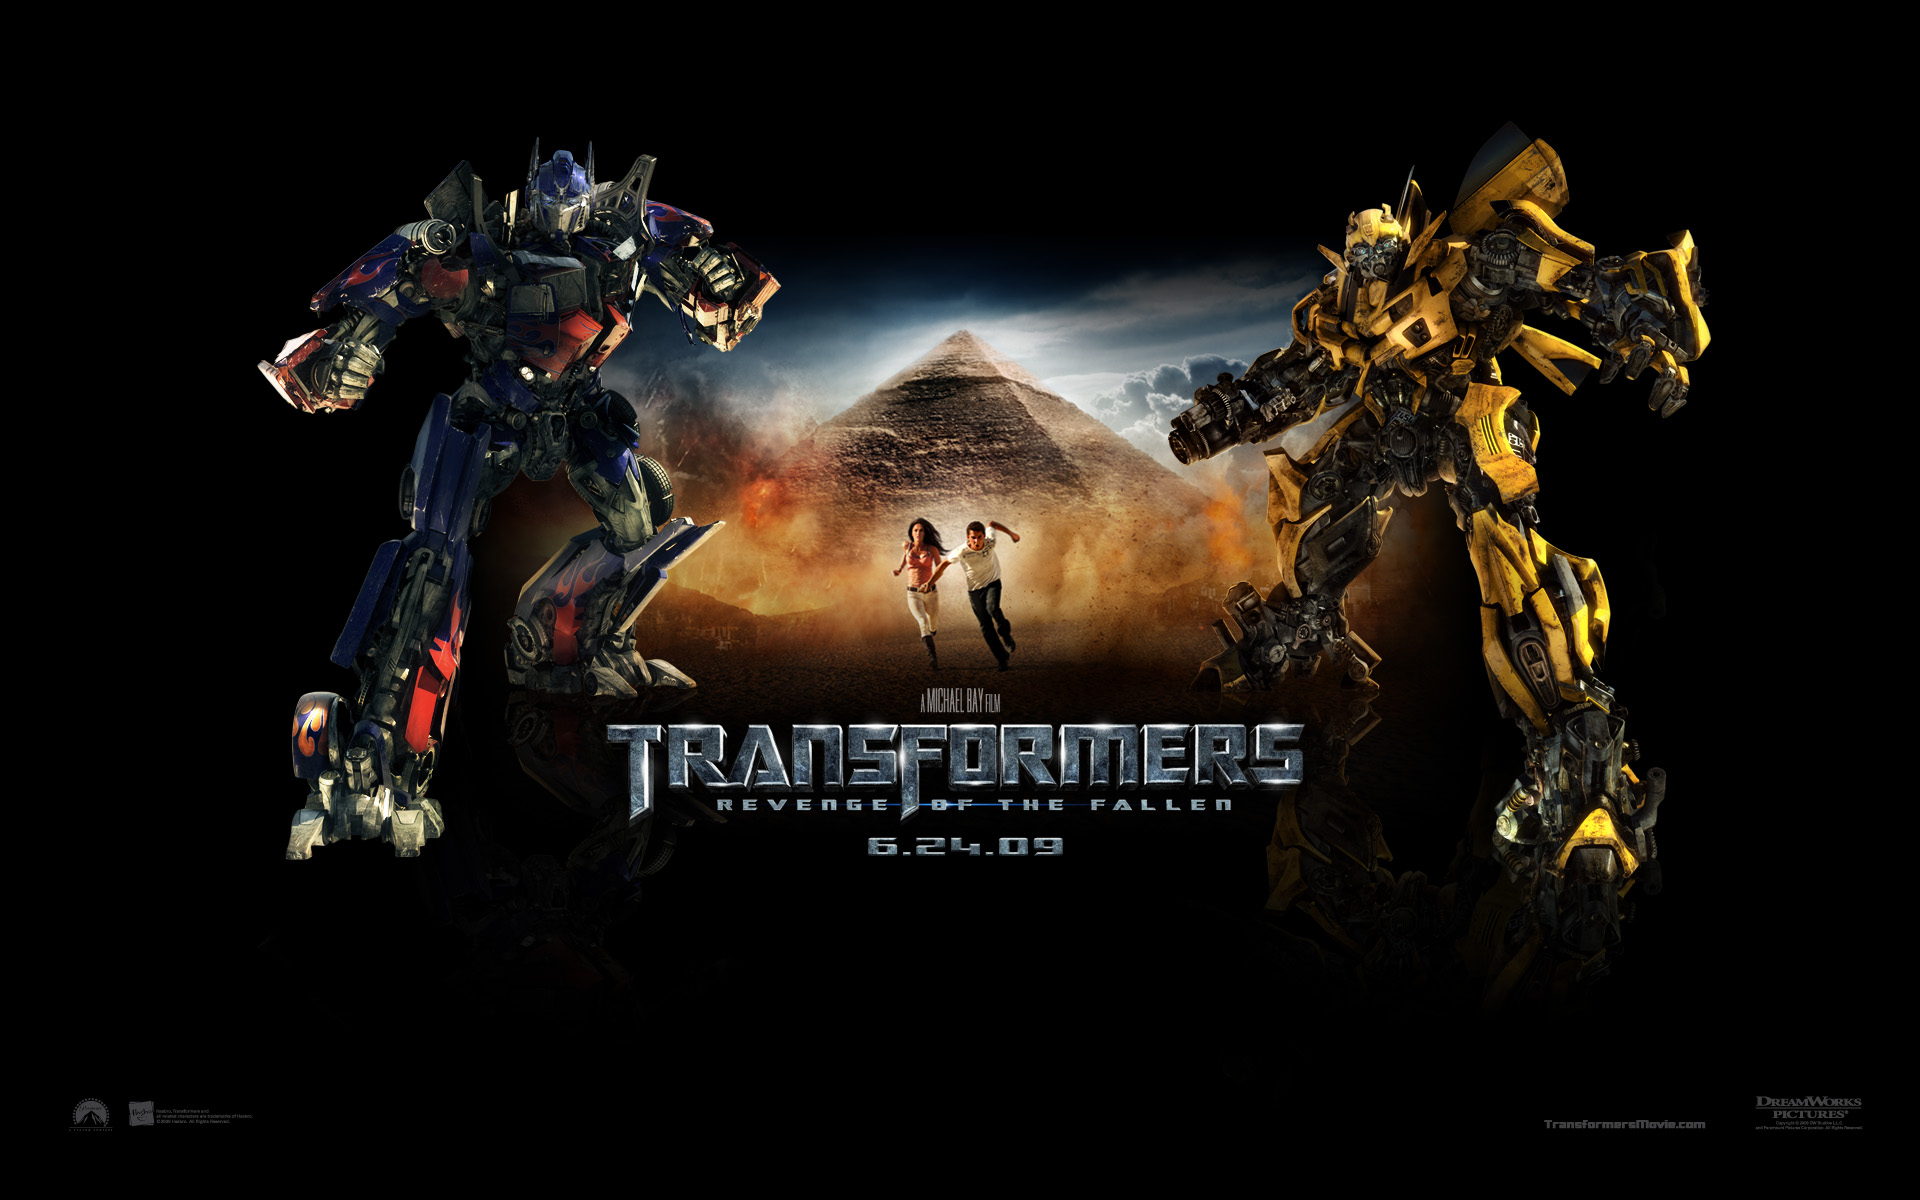 Wallpapers Film en serie Transformers 2